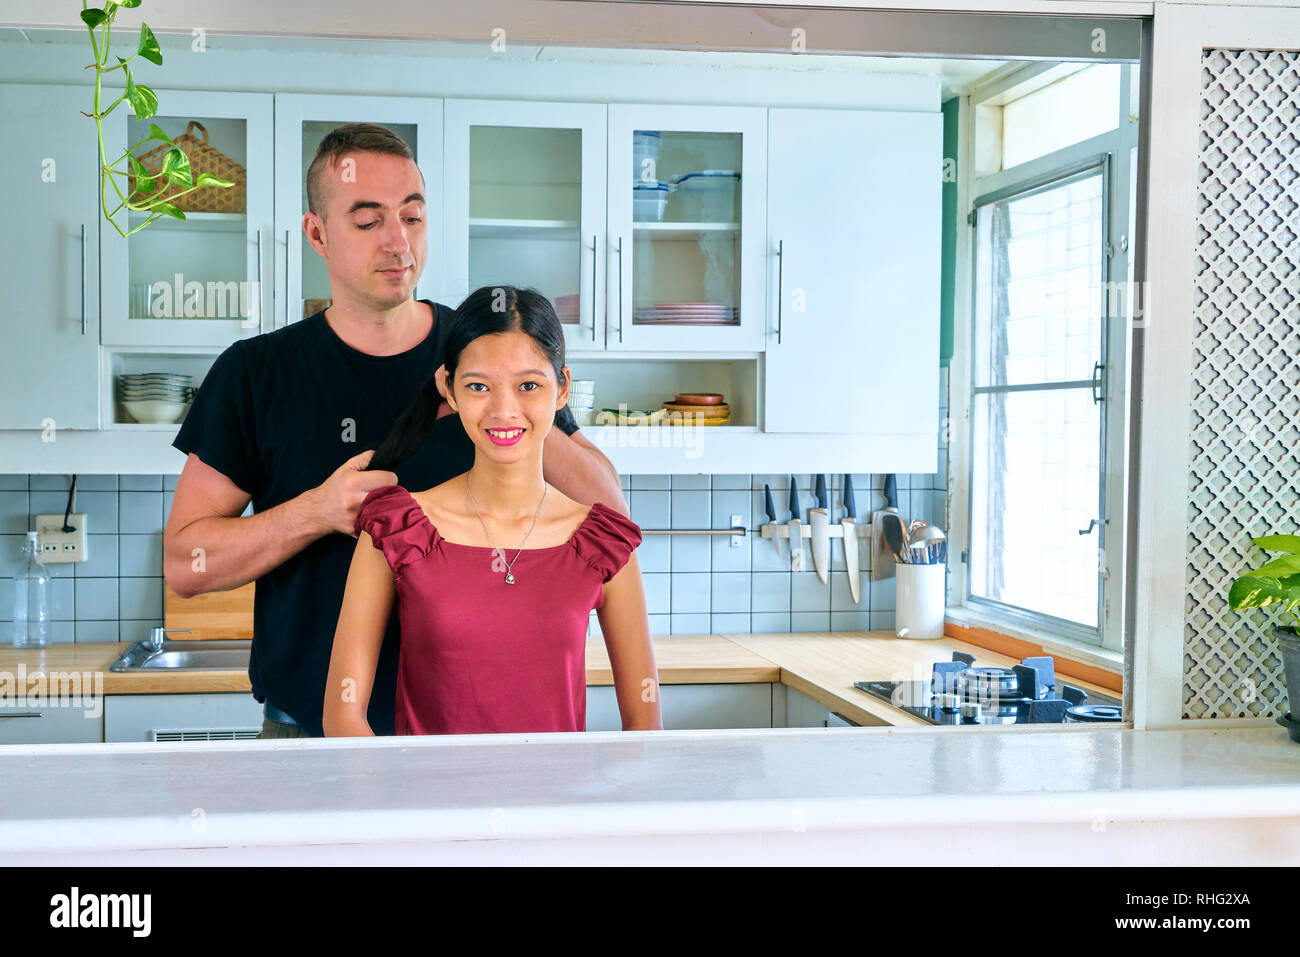 Lovely couple posing - man combing her hair and young woman looking at camera - Stock Image